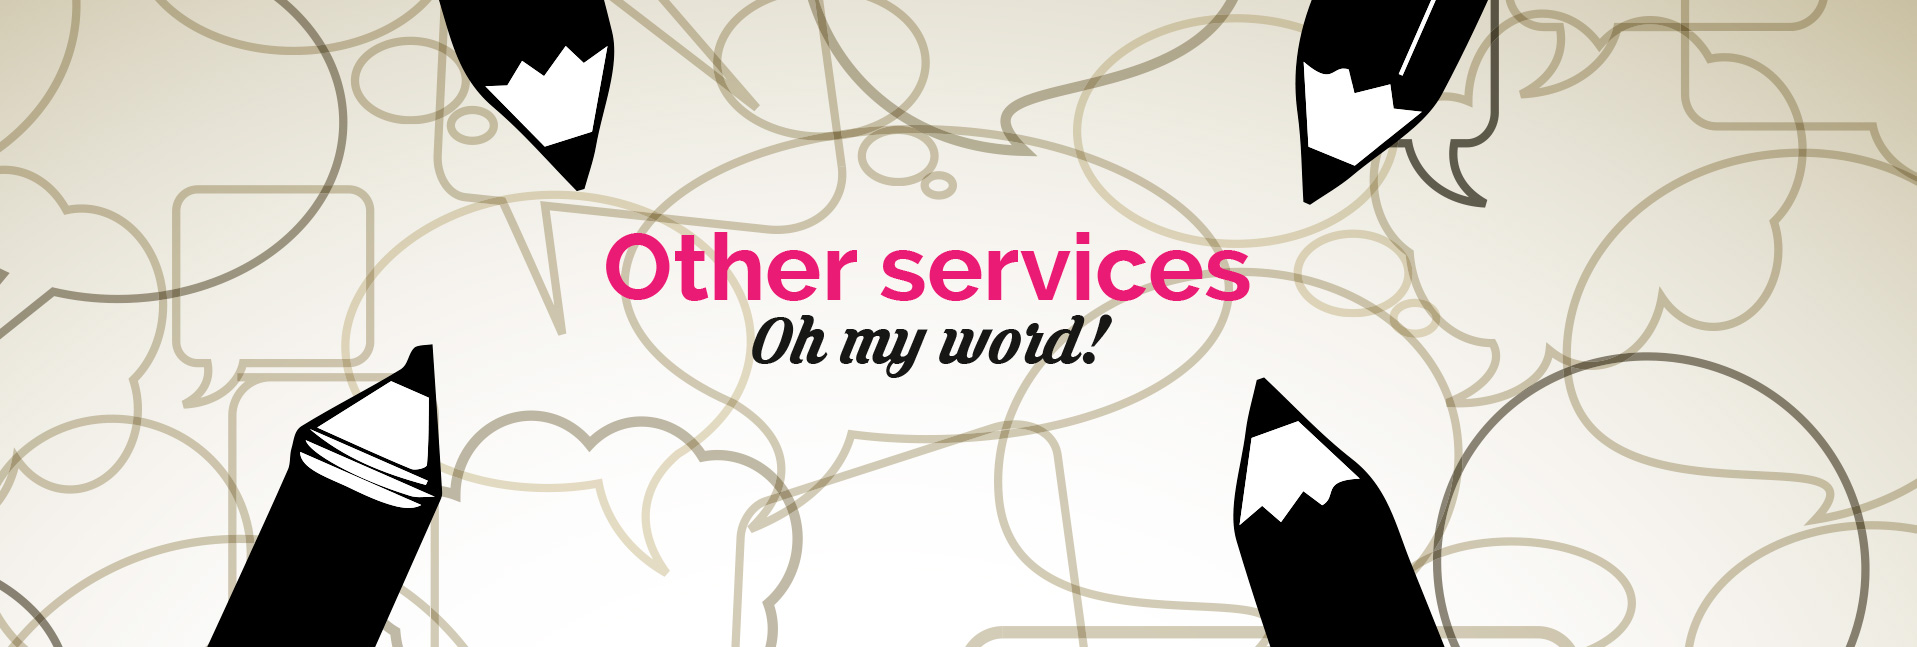 Other services. ohmyword!.